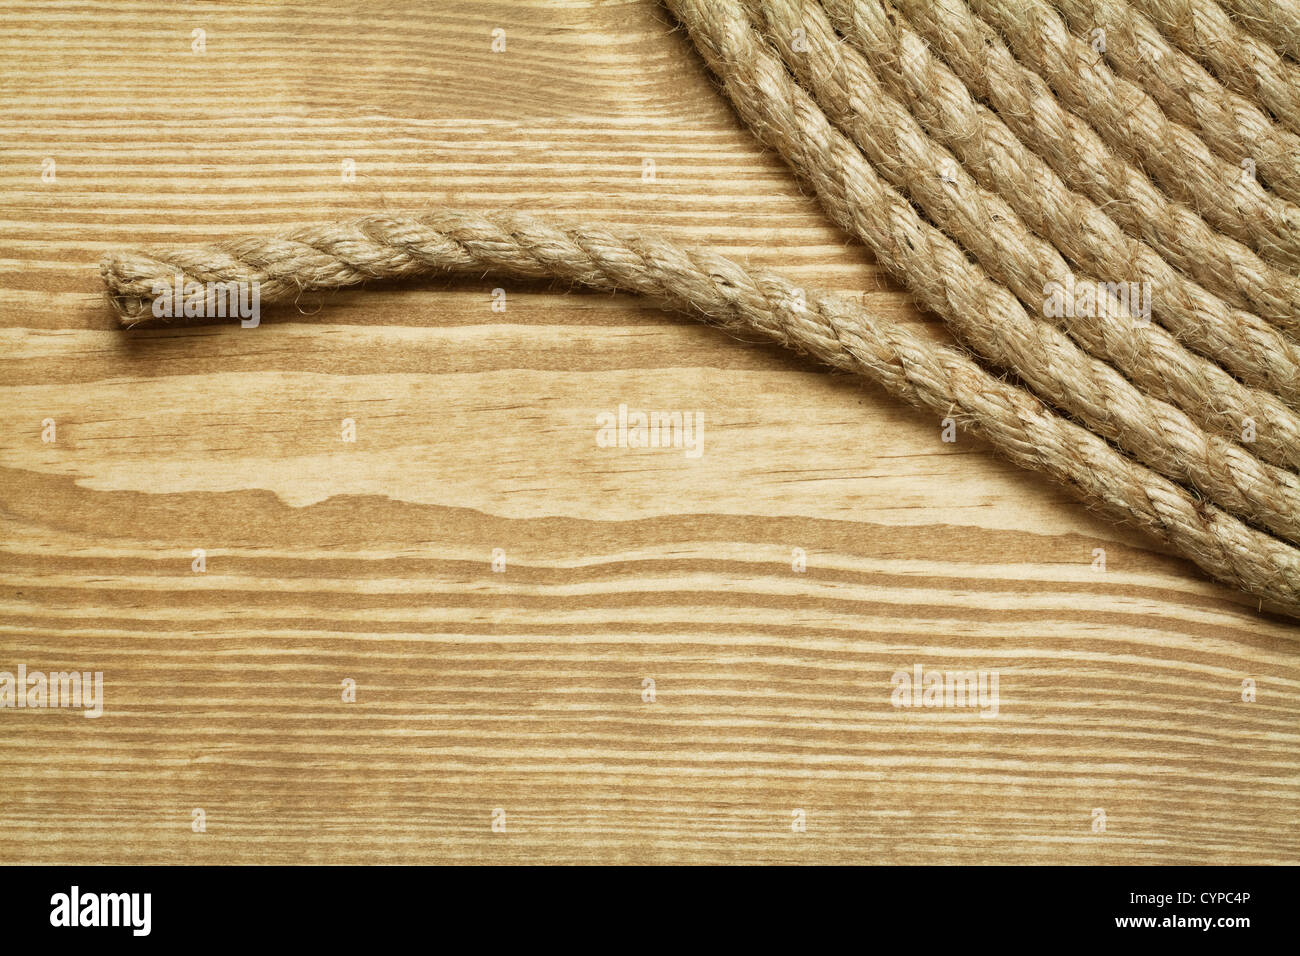 Roll of rough rope on wooden background - Stock Image